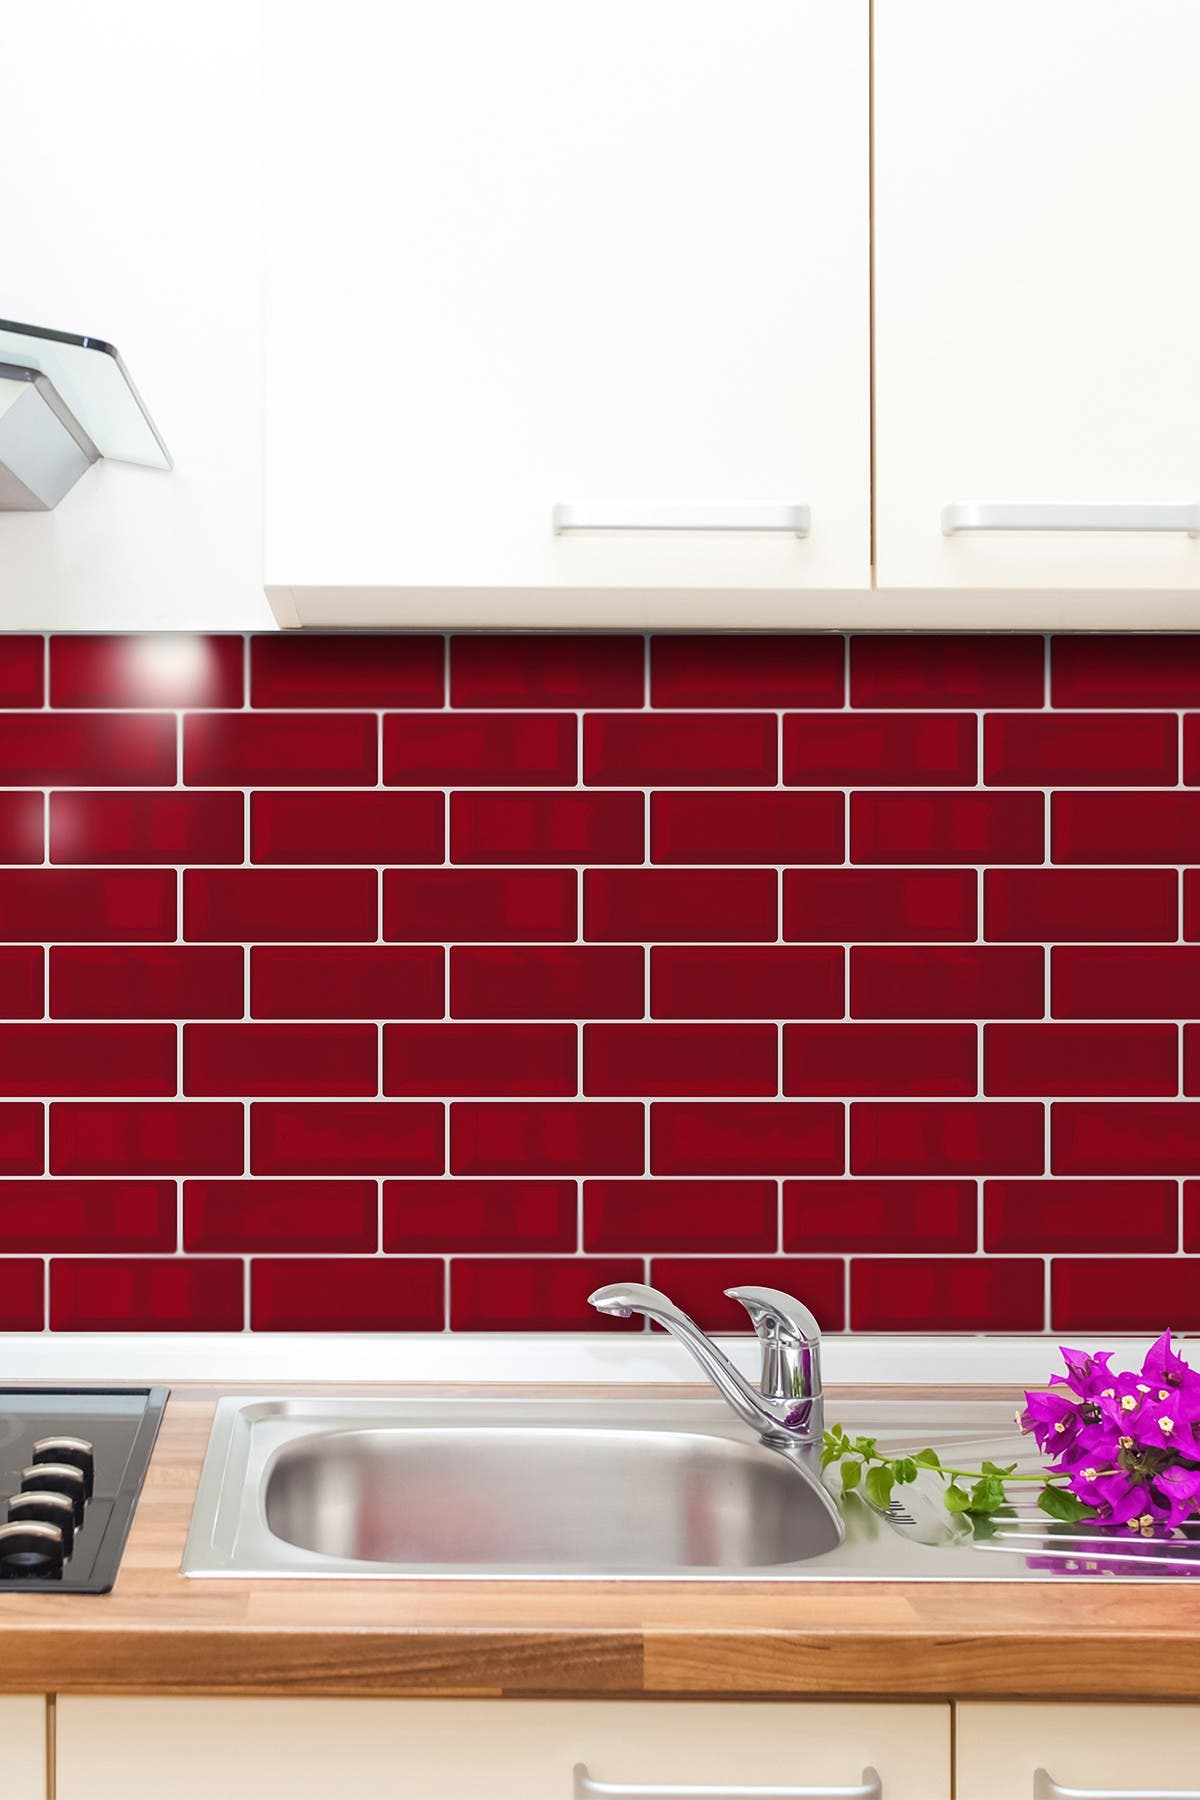 Image of WalPlus Cherry Red Metro 3D Metro Sticker Tiles Retro Wall Splashbacks Mosaics